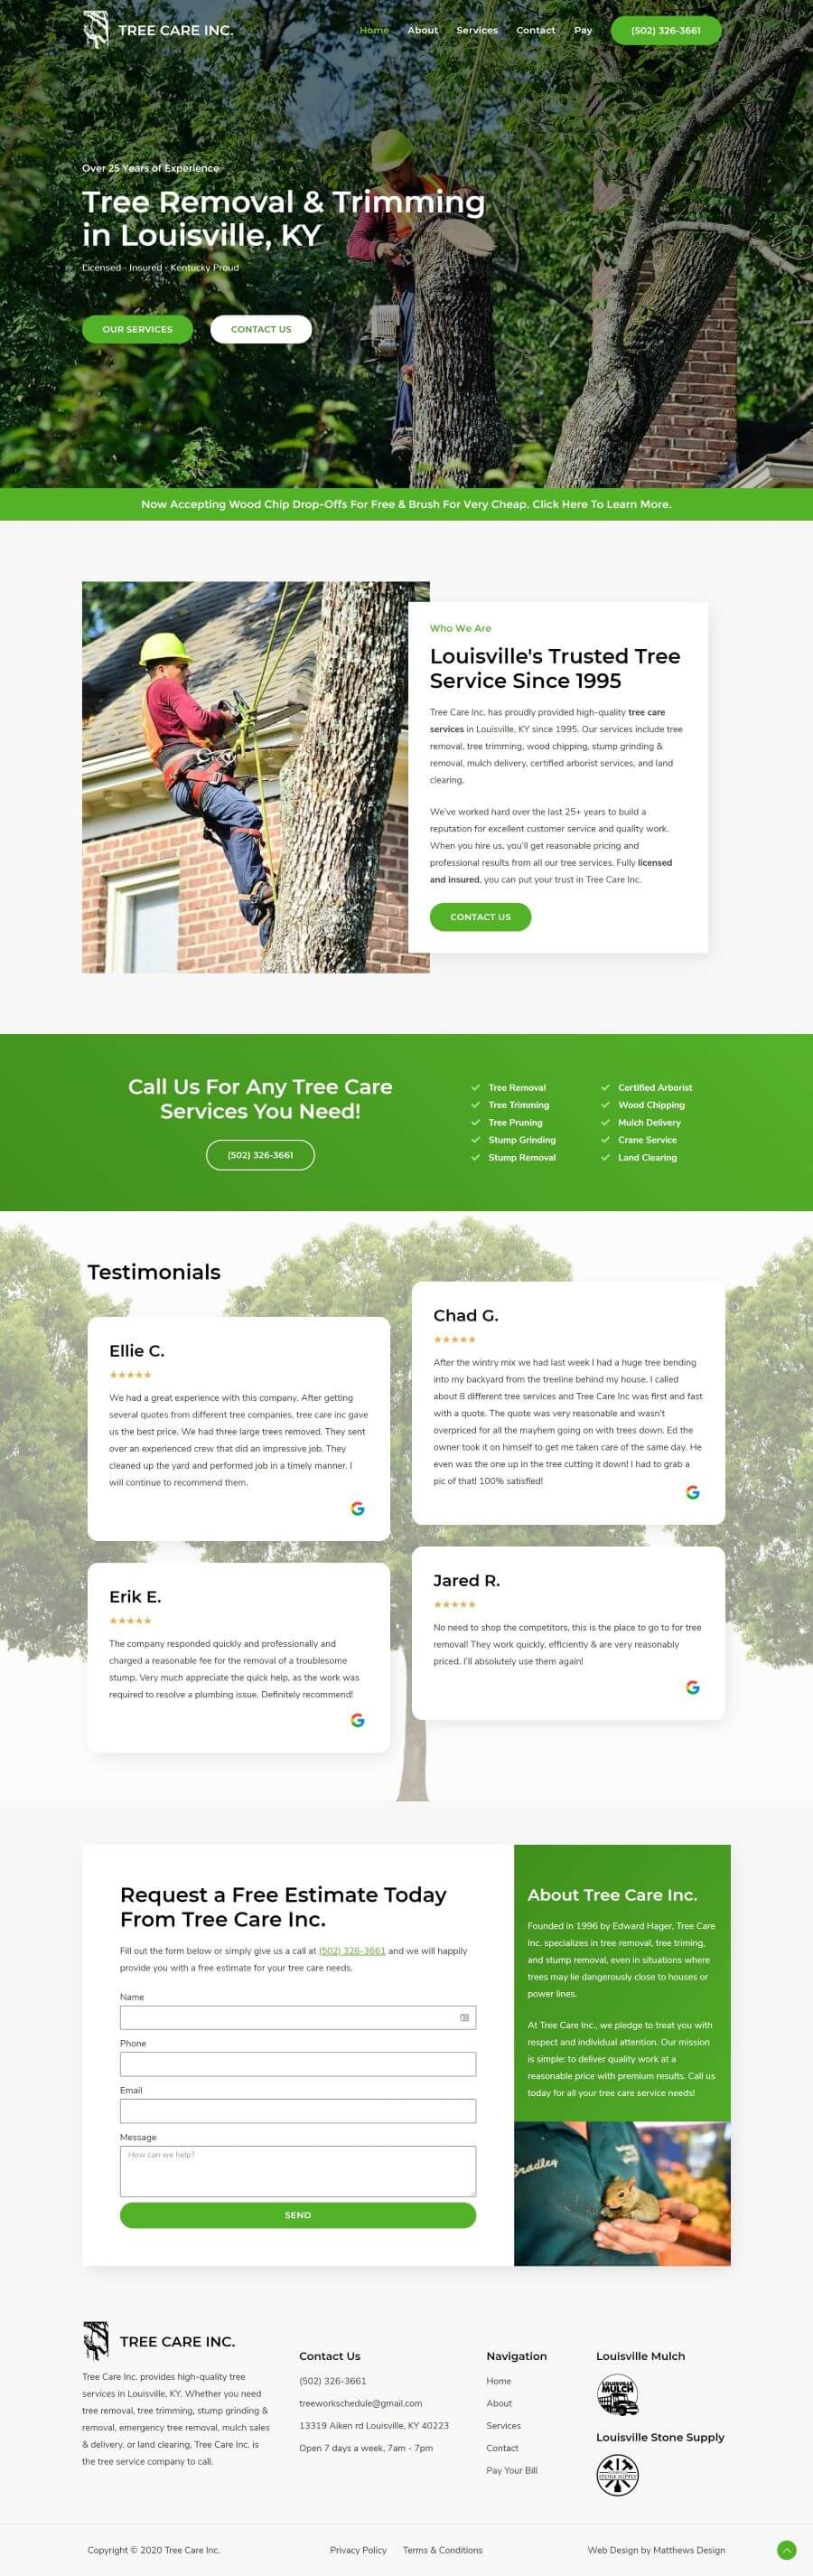 Tree Care Inc Web Design by Matthews Design